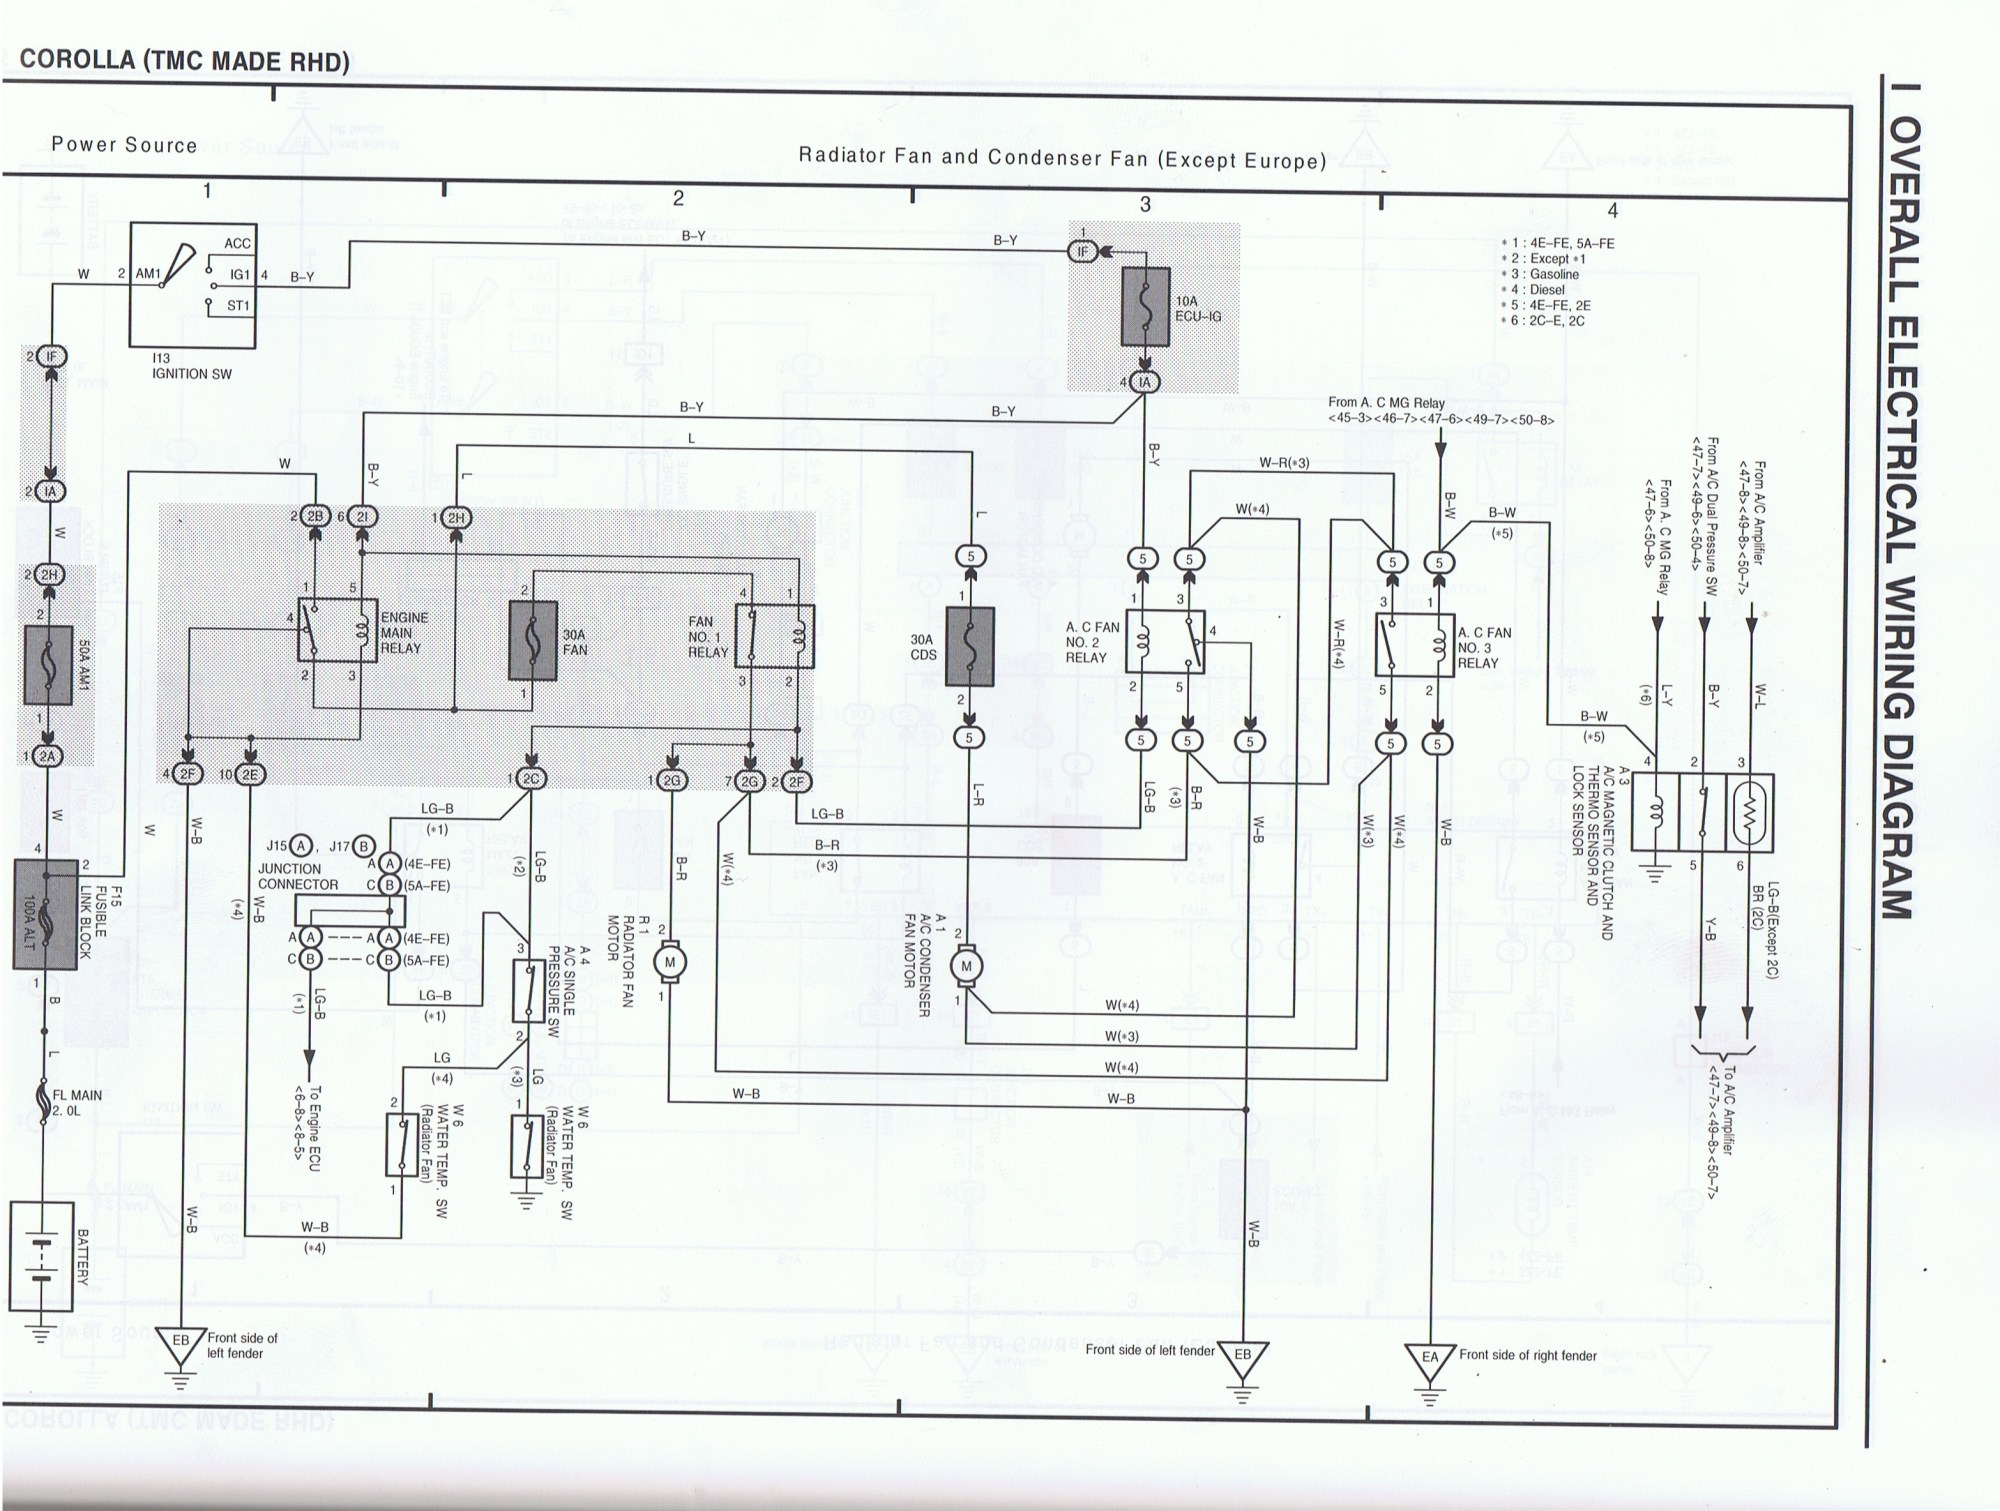 hight resolution of toyota levin ae111 wiring diagram wiring diagrams wni toyota levin wiring diagram